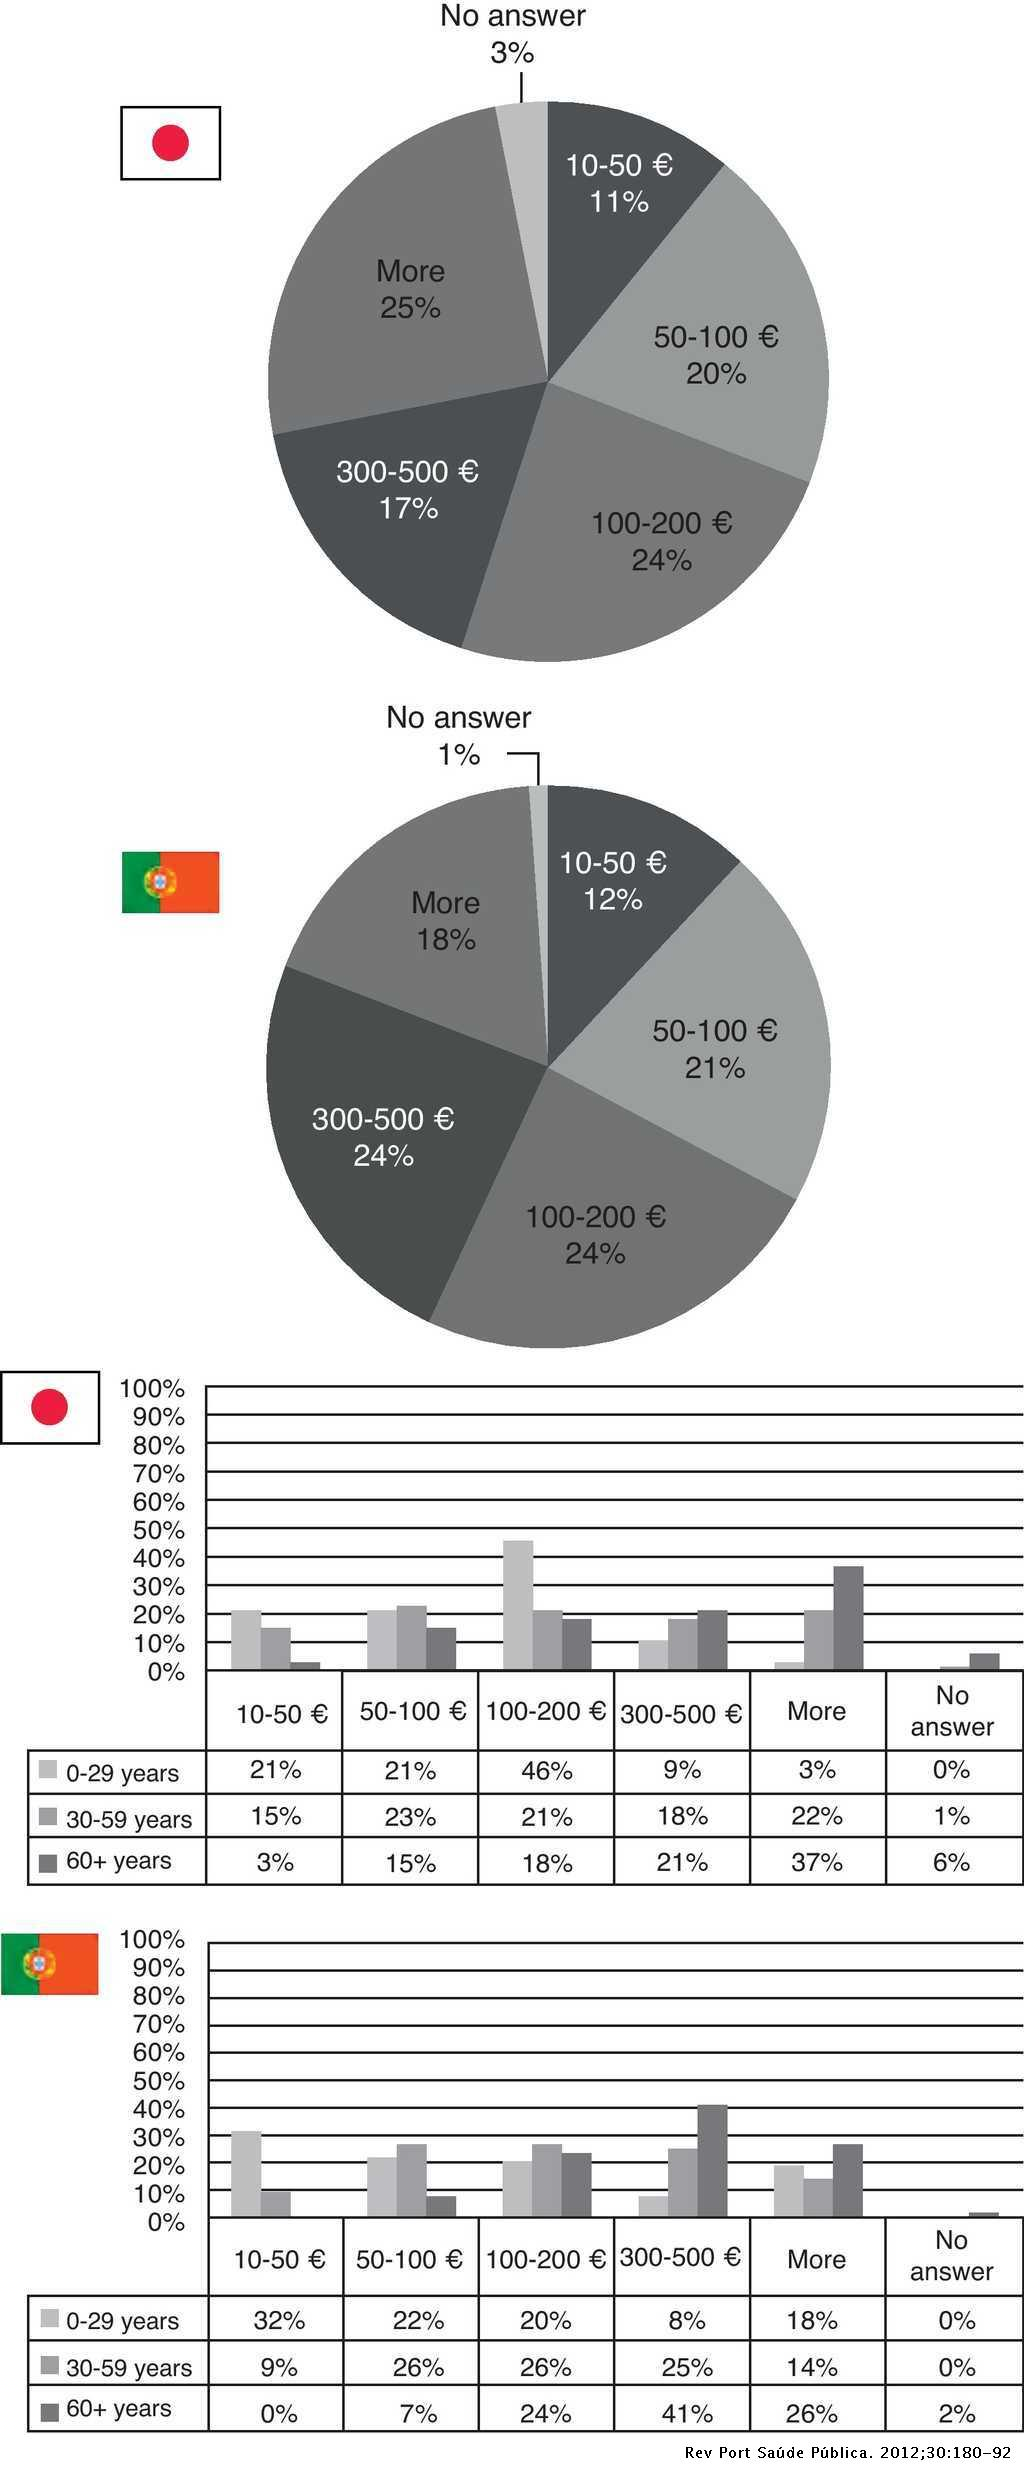 Comparing healthcare systems: considering Japan and Portugal